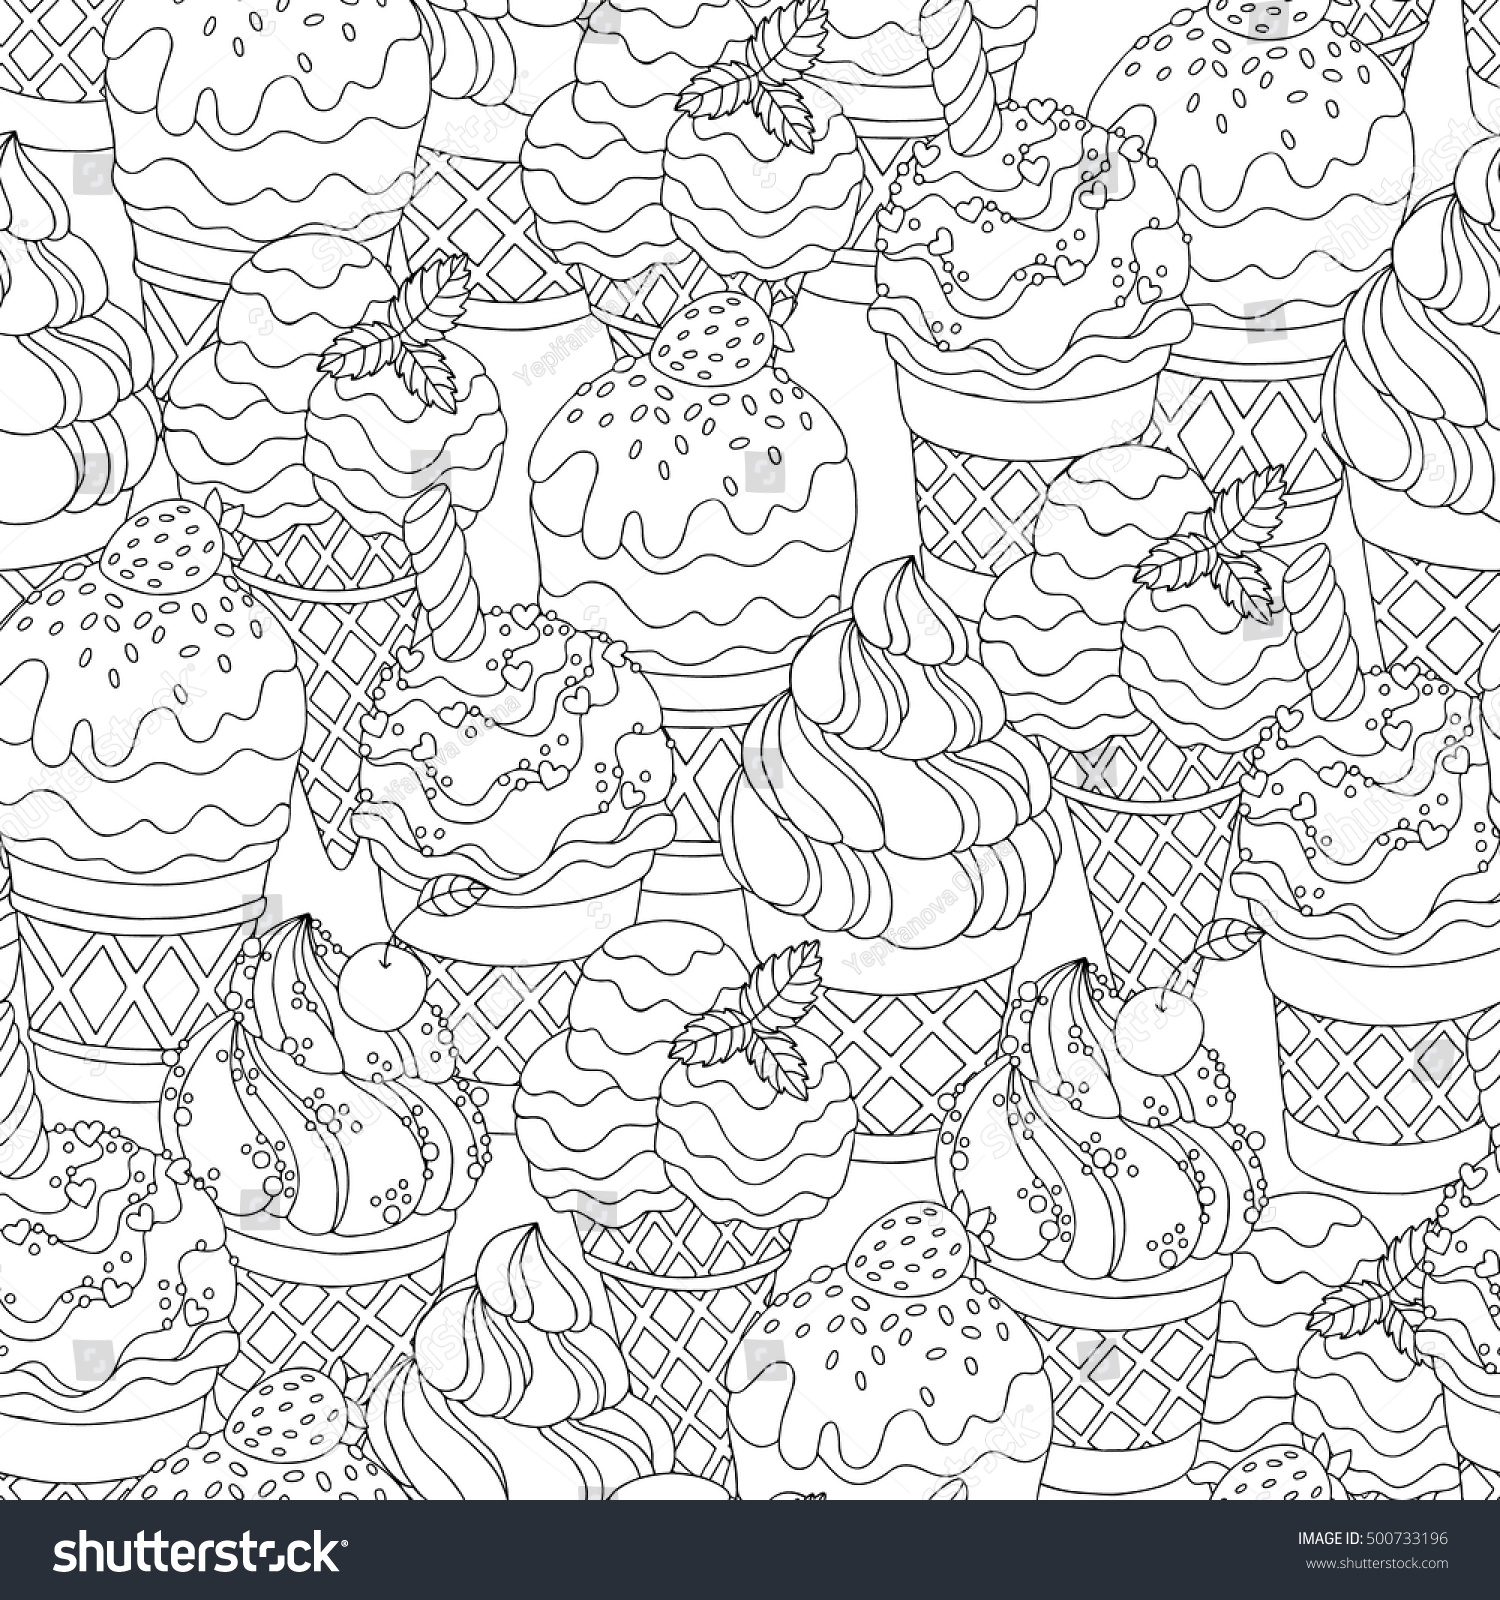 Elegant Vector Hand Drawn Cartoon Ice Cream Stock With Coloring Book Wallpaper